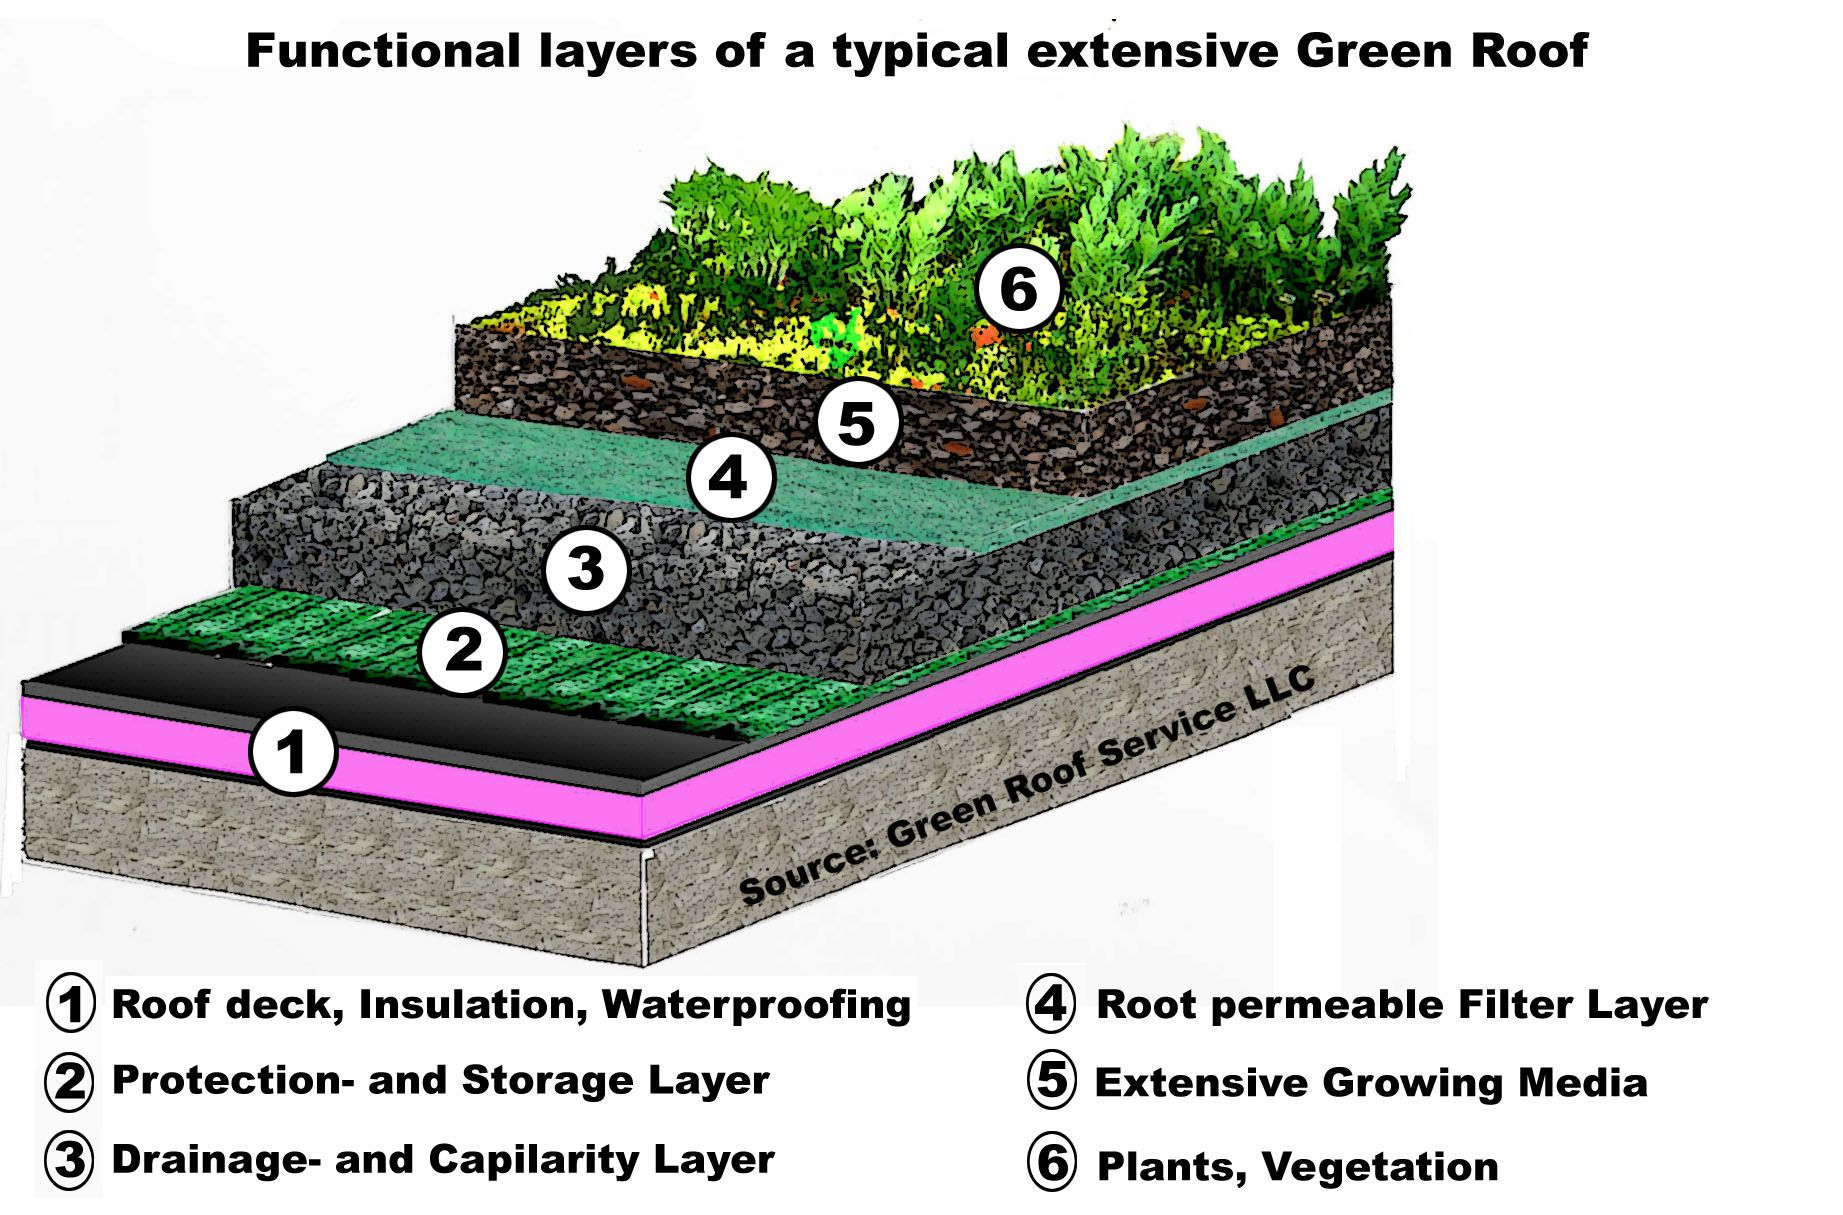 Green Roofs A Useful Solution To Embellish Our Home And Live Better Green Roof Design Green Roof Green Roof Benefits